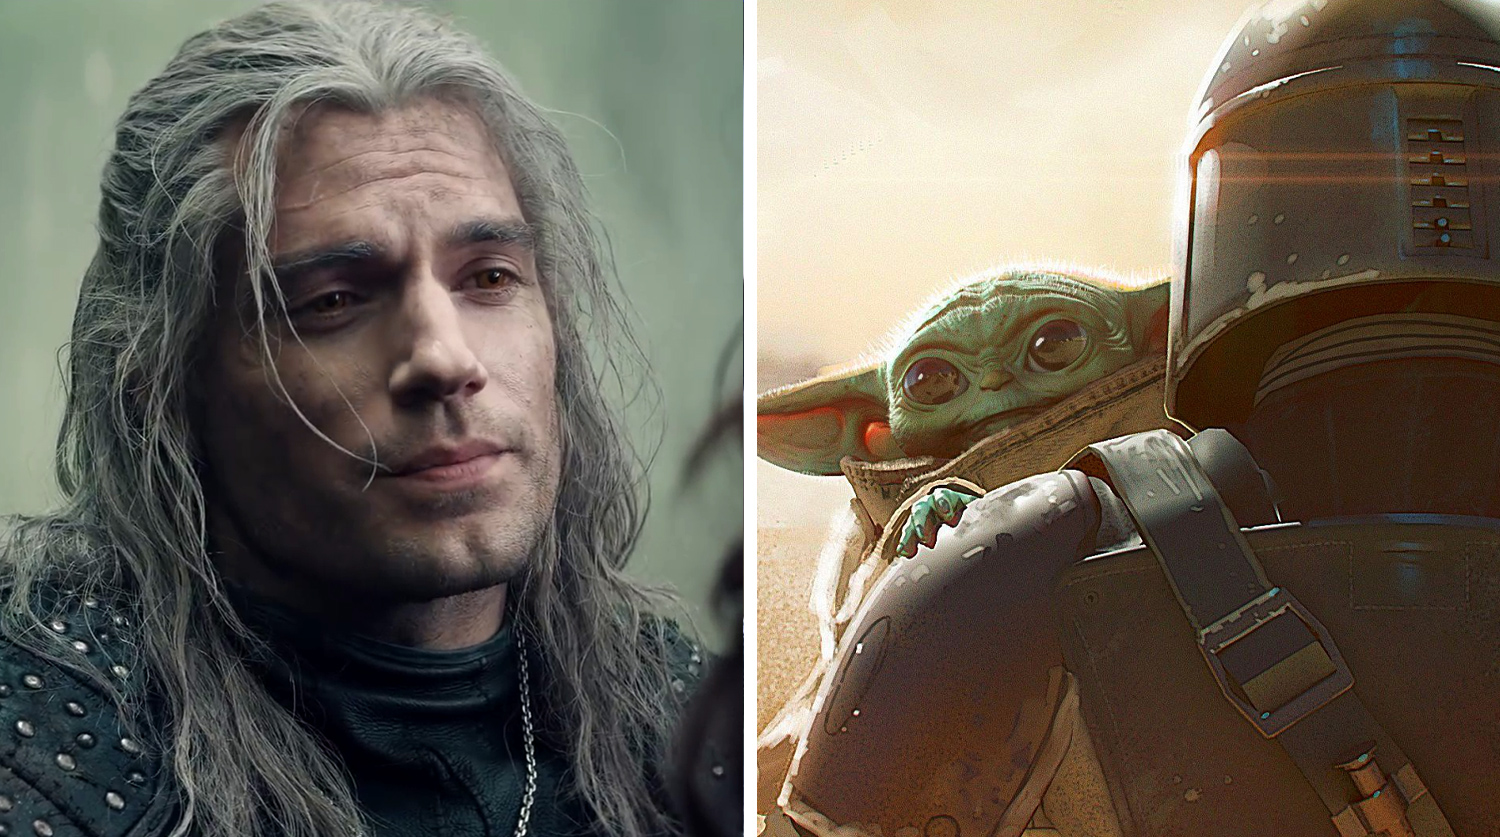 """""""The Witcher"""" ahead of """"The Mandalorian"""" and became the most popular TV series in US"""